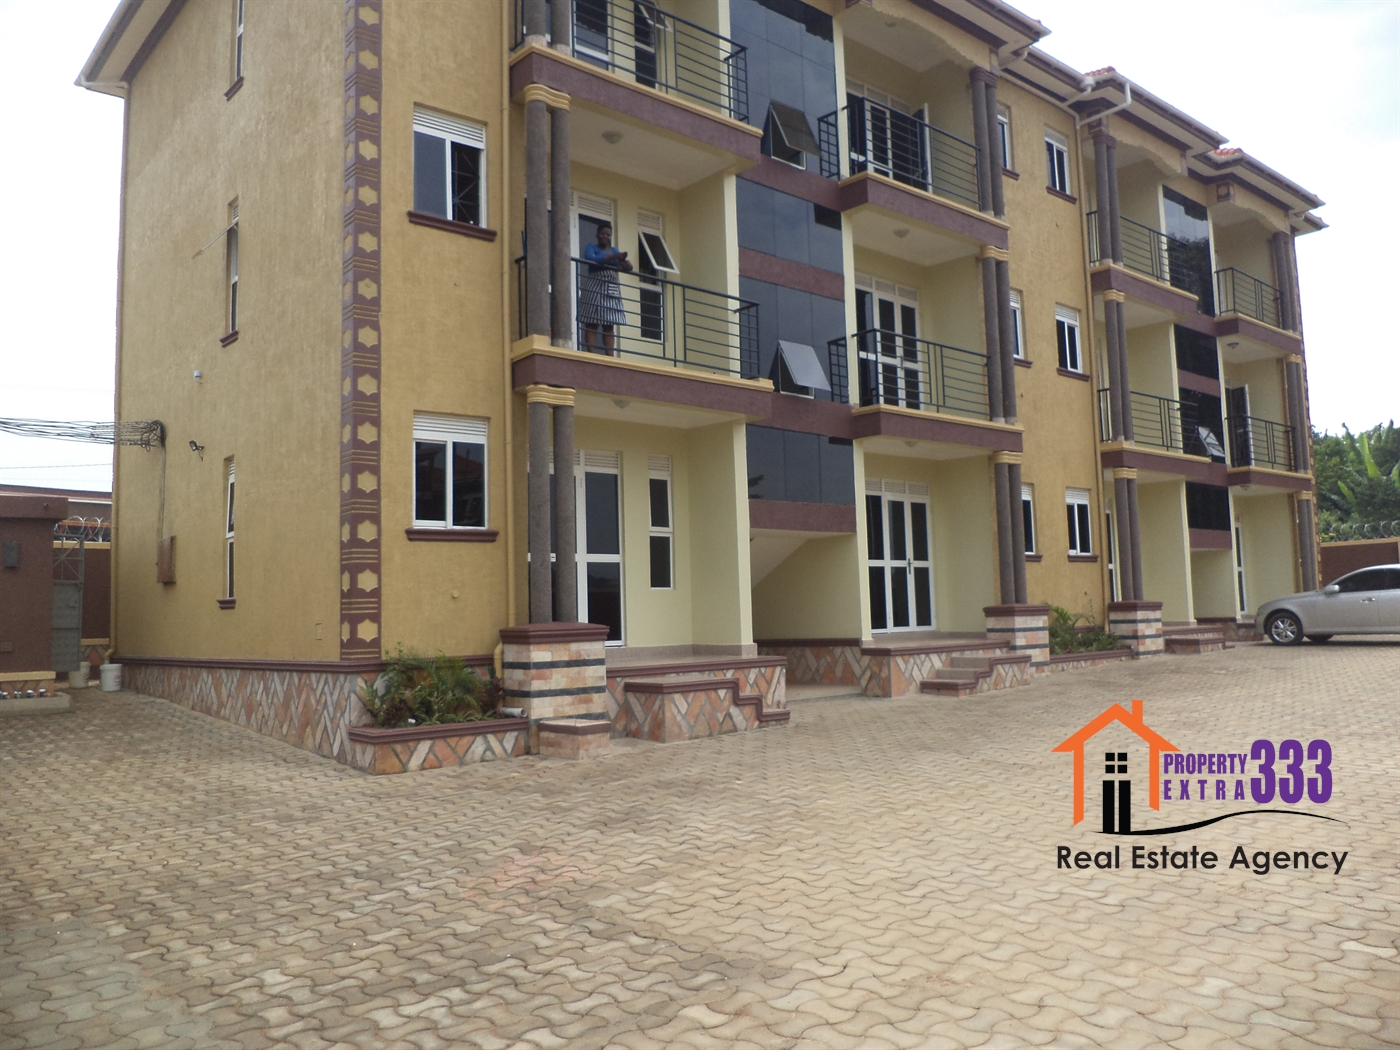 Apartment block for sale in Kyanja Kampala